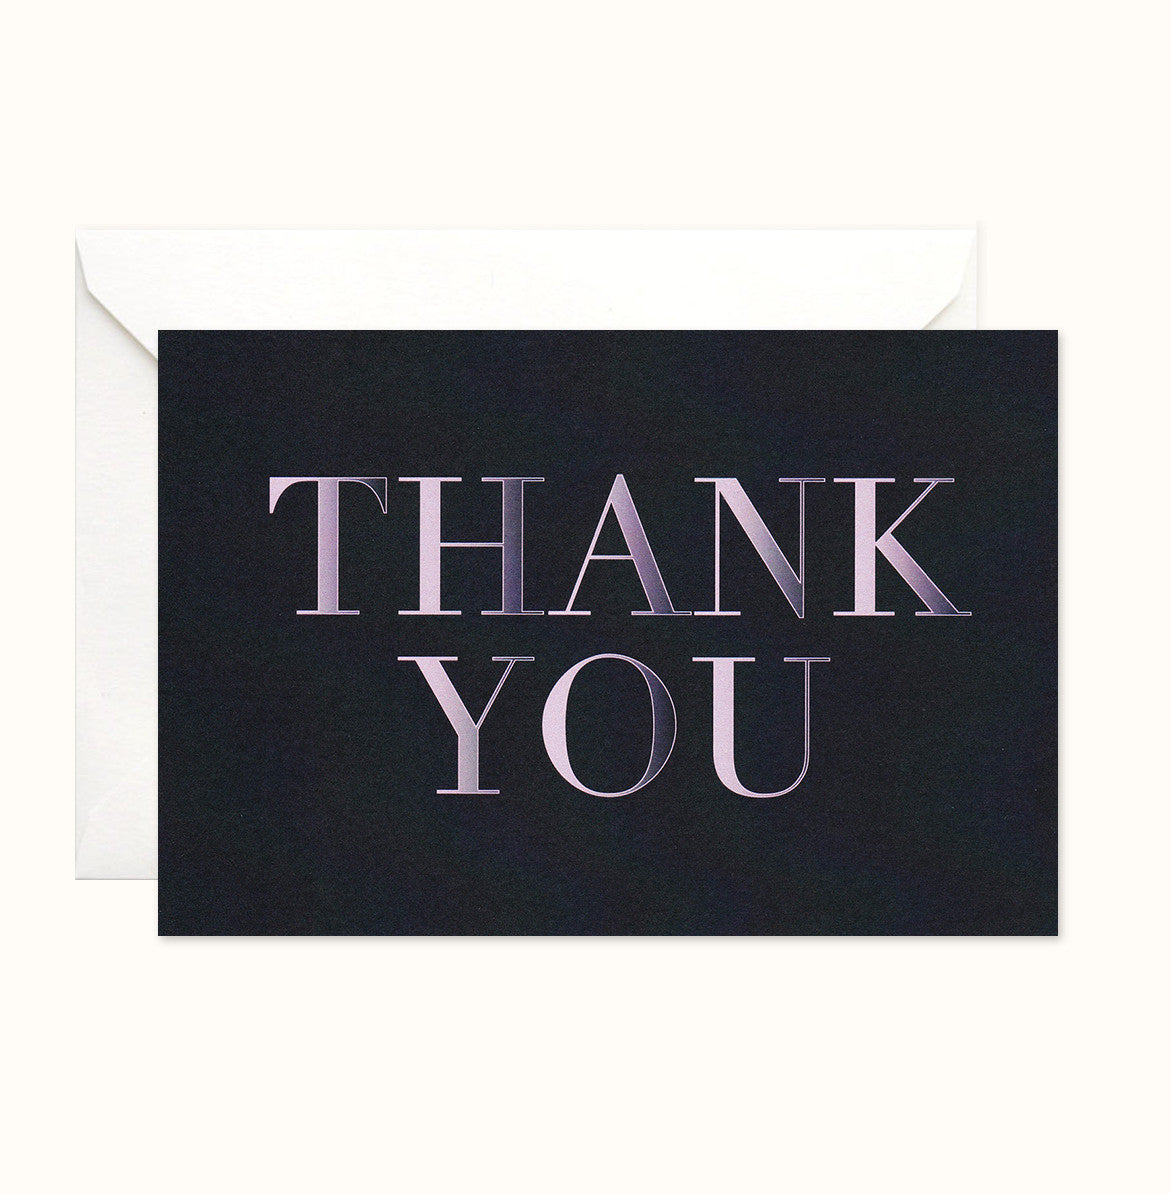 Reveal Thank You card